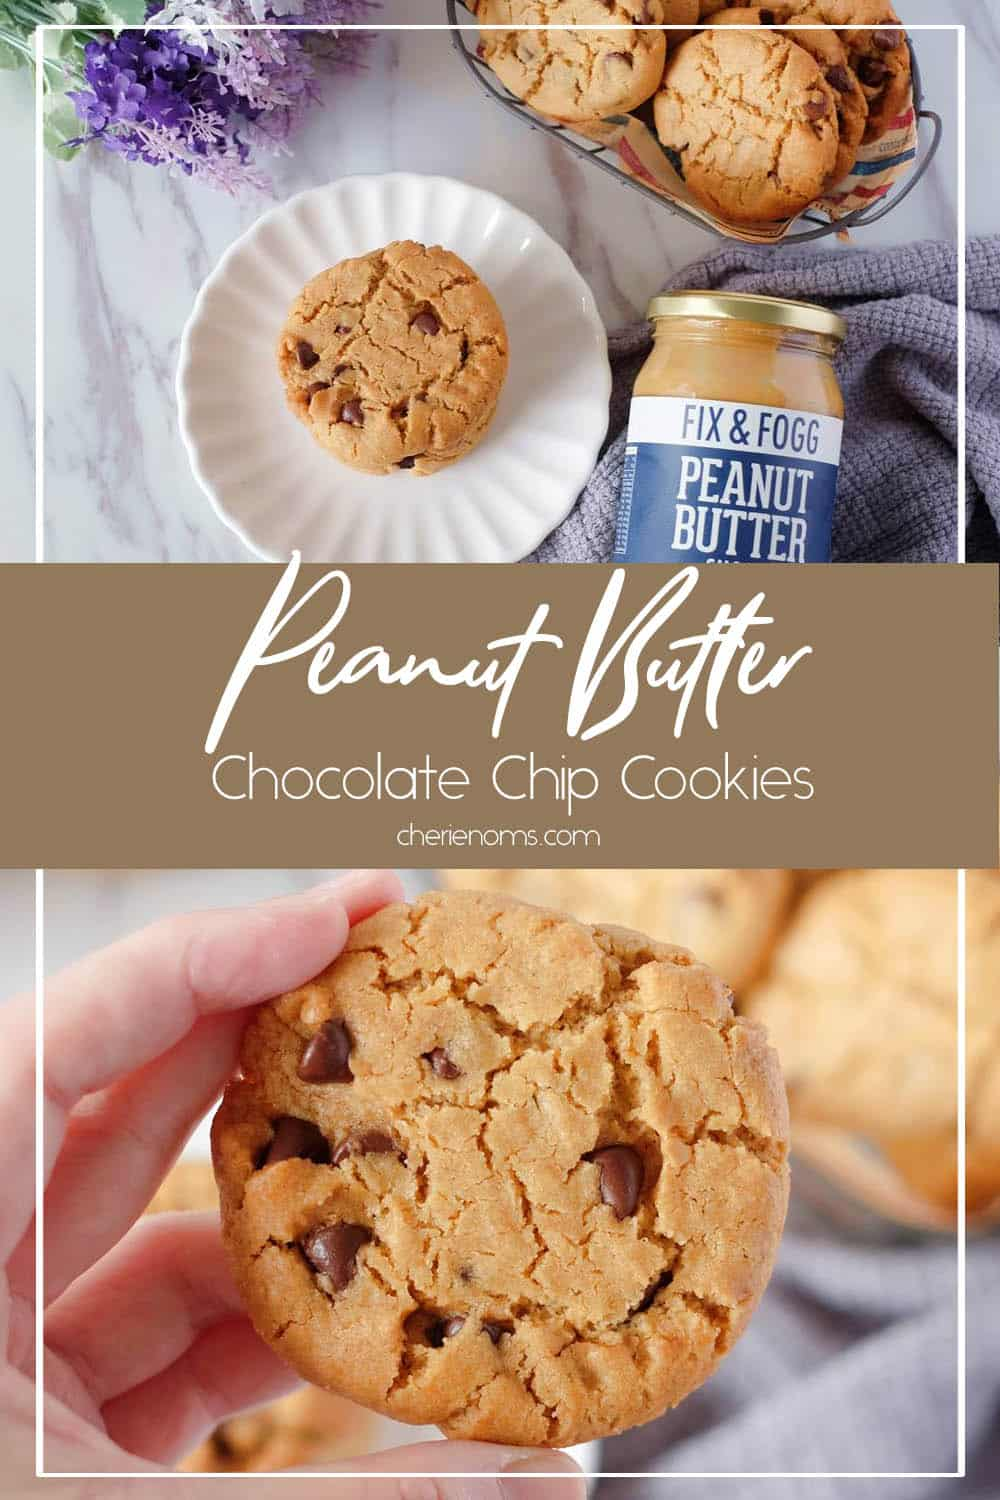 Delicious thick and chewy Peanut Butter Chocolate Chip Cookies. Easy one-bowl recipe, made with natural peanut butter and other simple ingredients! Save this super easy cookie recipe for laters! via @cherienoms